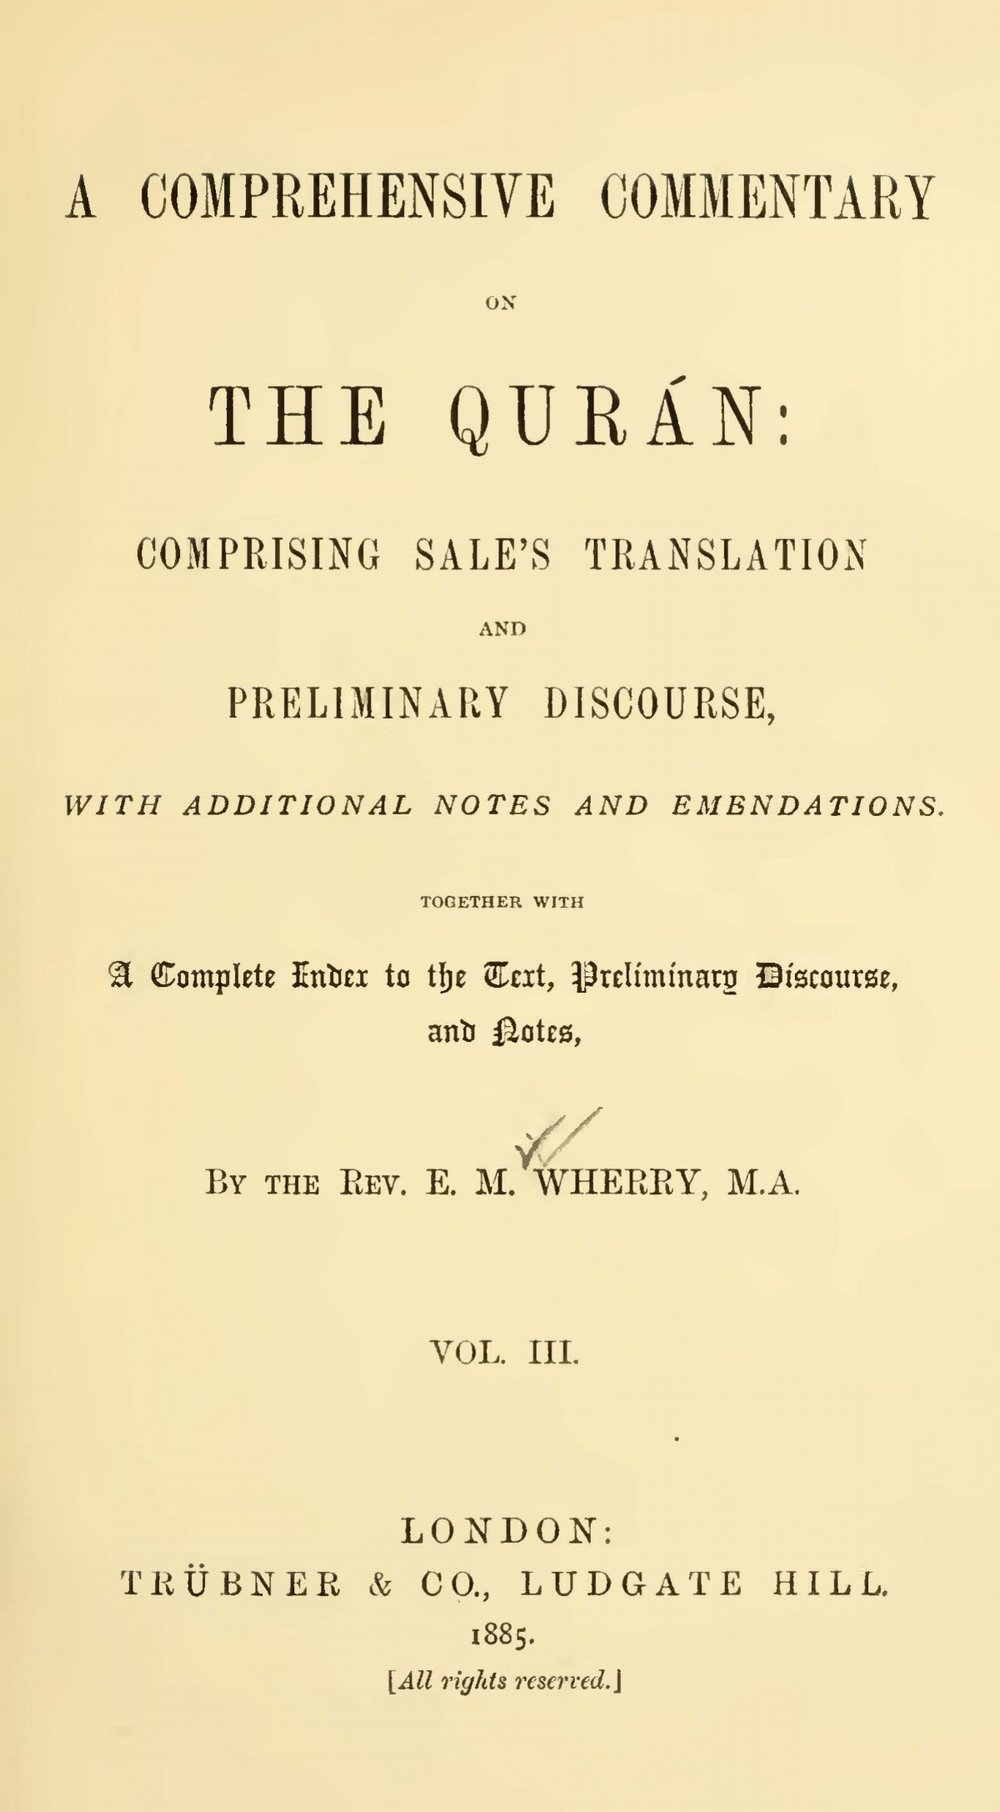 Wherry, Elwood Morris, A Comprehensive Commentary on the Quran, Vol. 3 Title Page.jpg